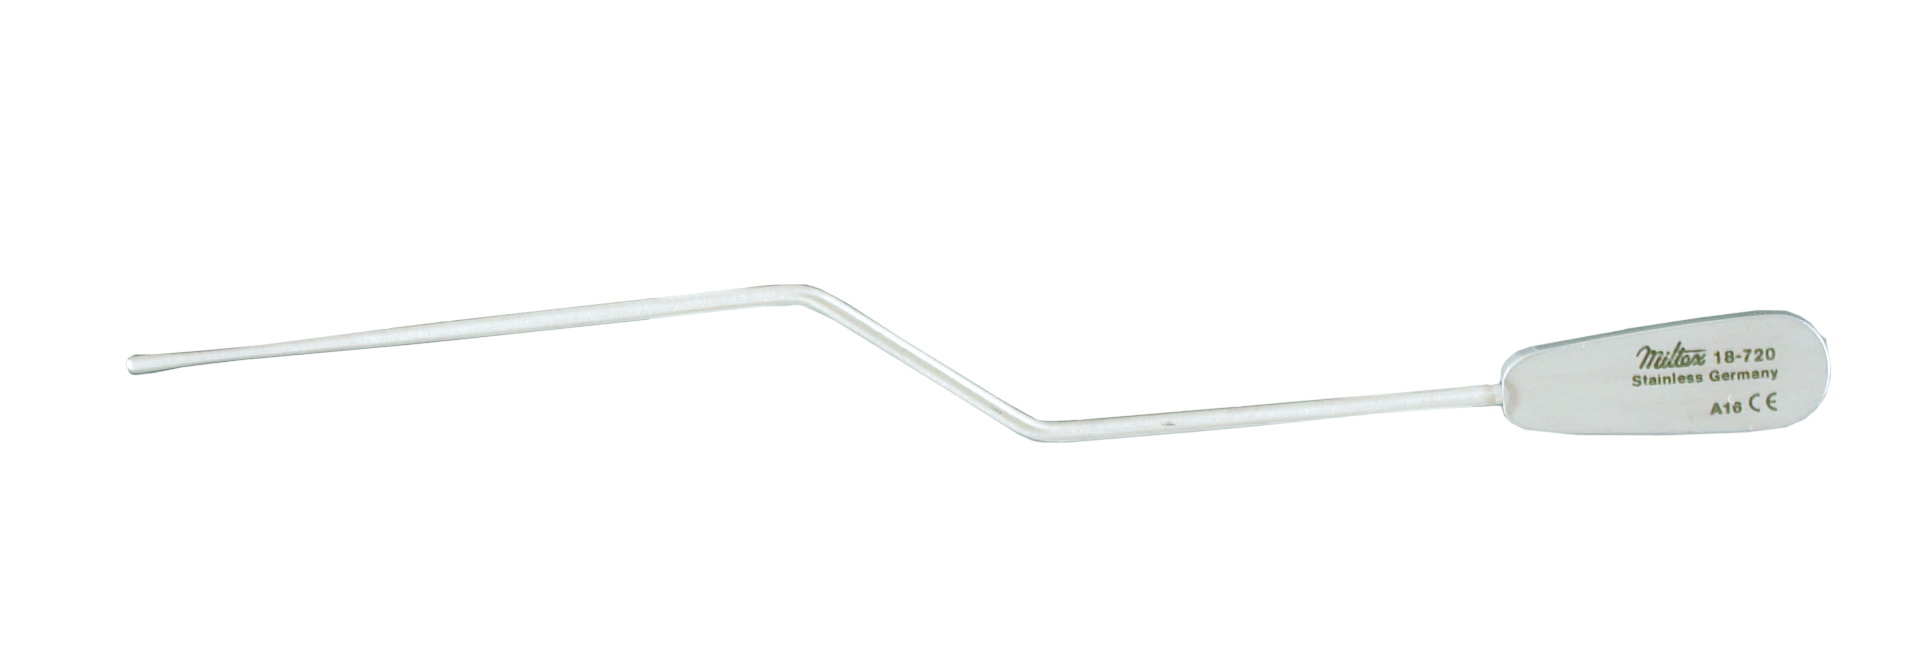 french-pattern-lacrimal-probe-size-4-18-720-miltex.jpg